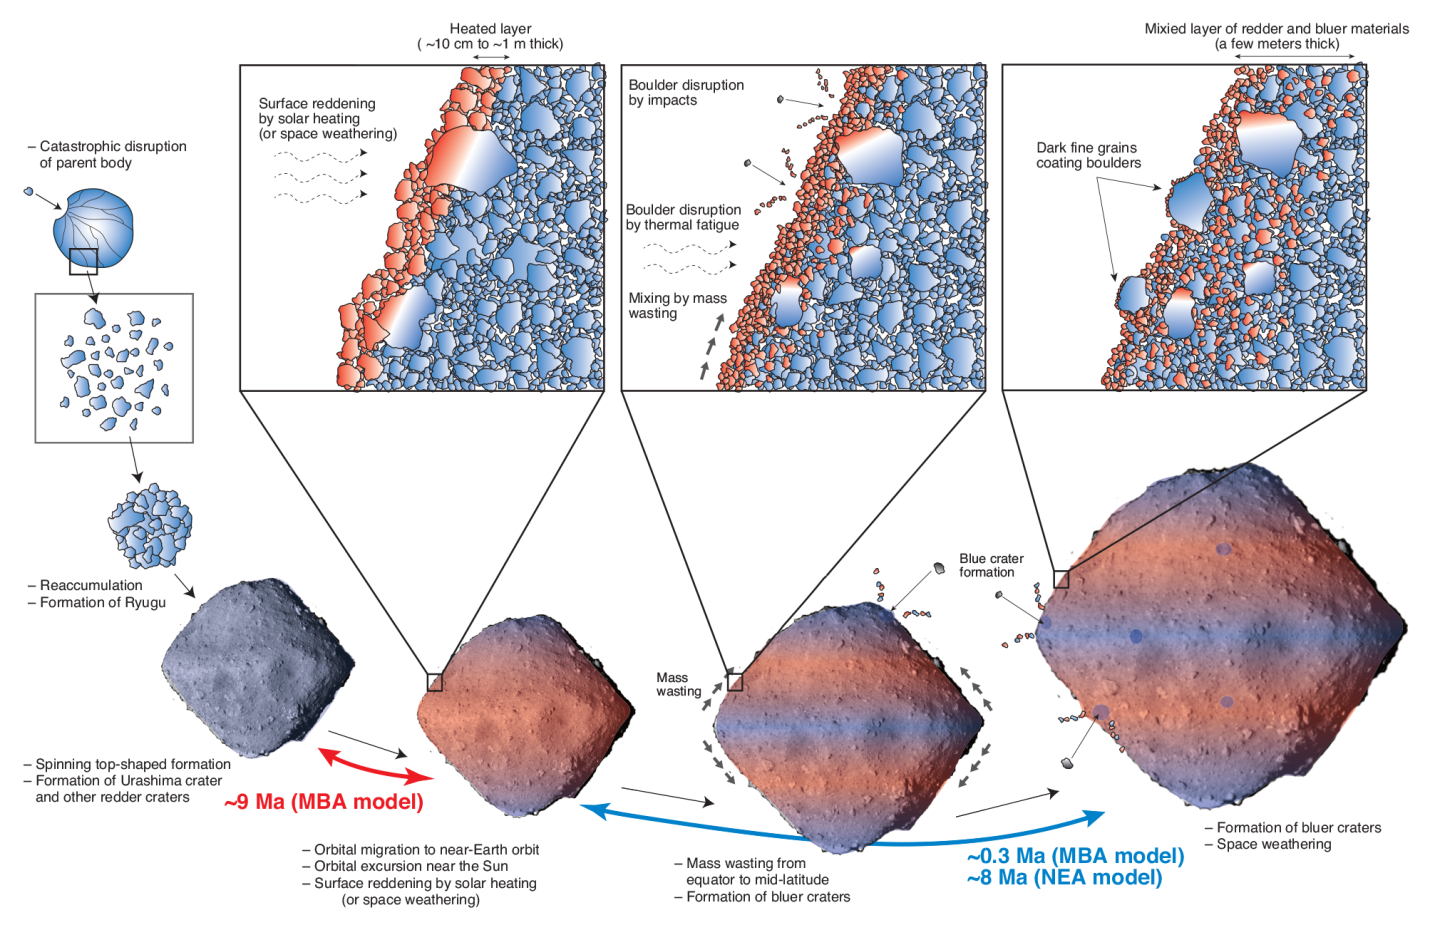 Diagram depicting the evolution of asteroid Ryugu